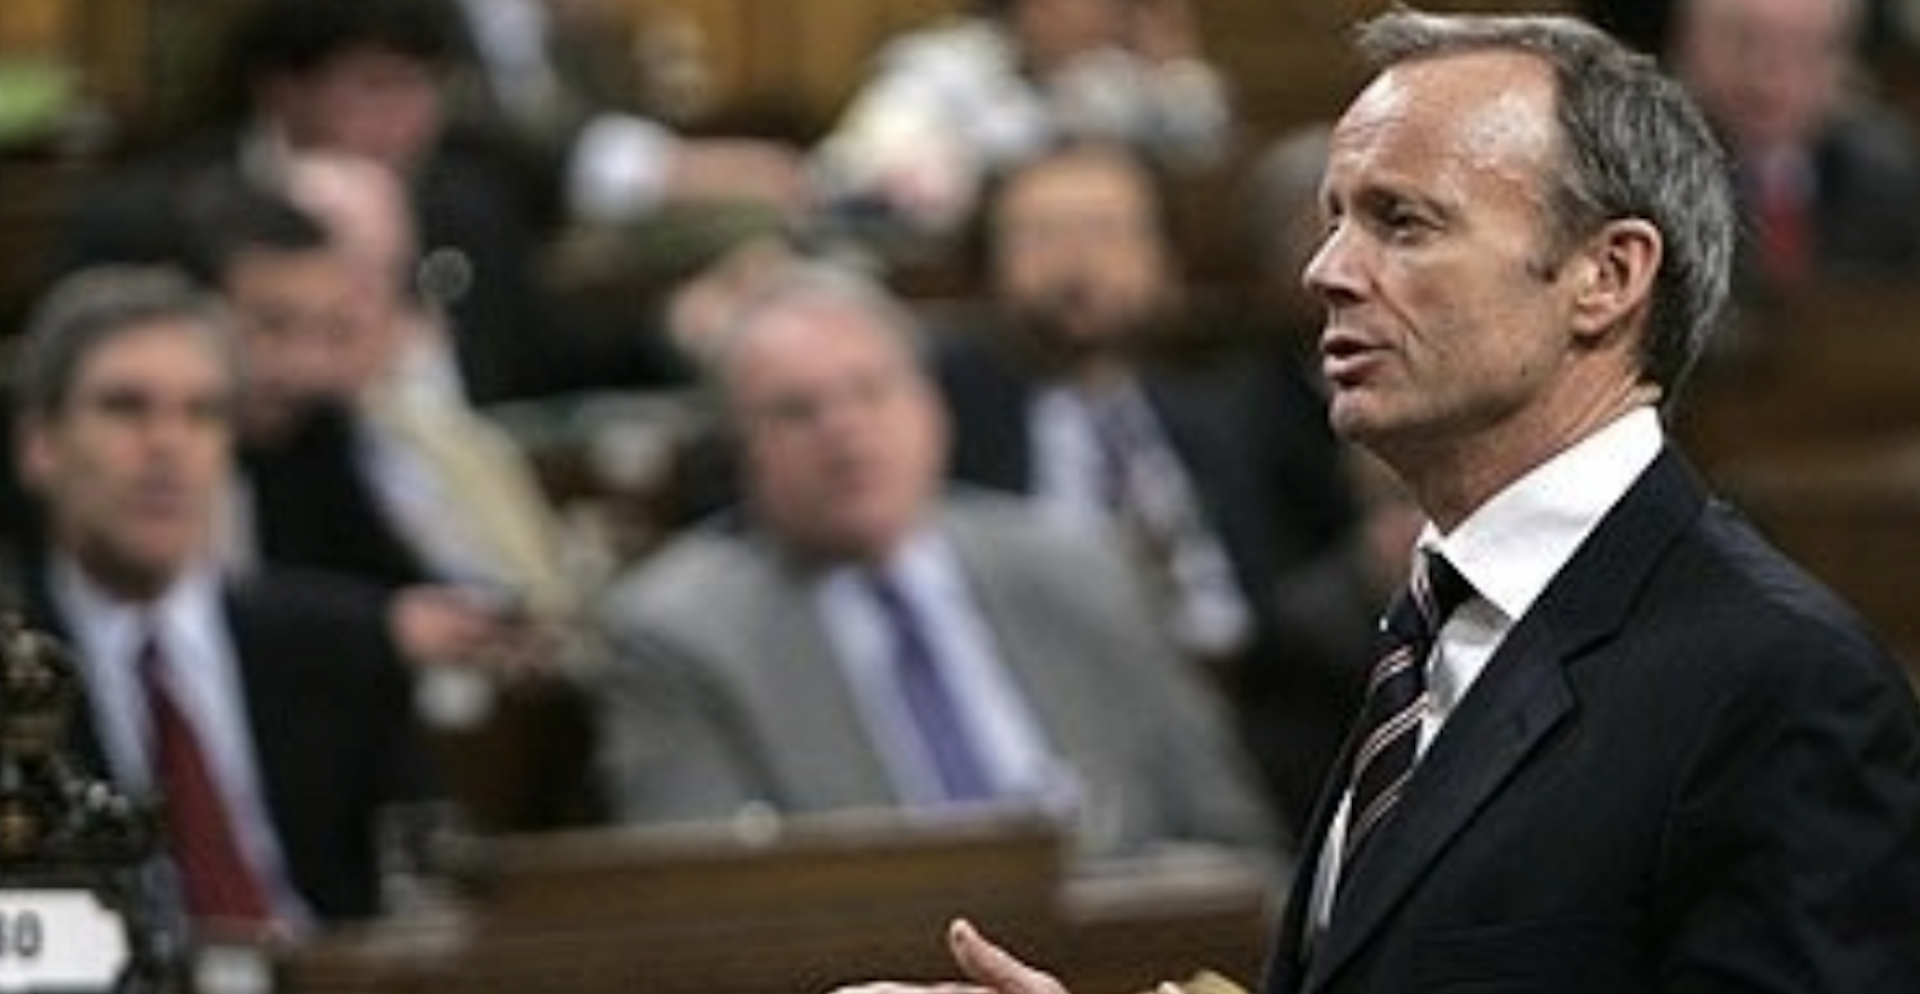 Stockwell Day resigns from a number of roles following comments on racism